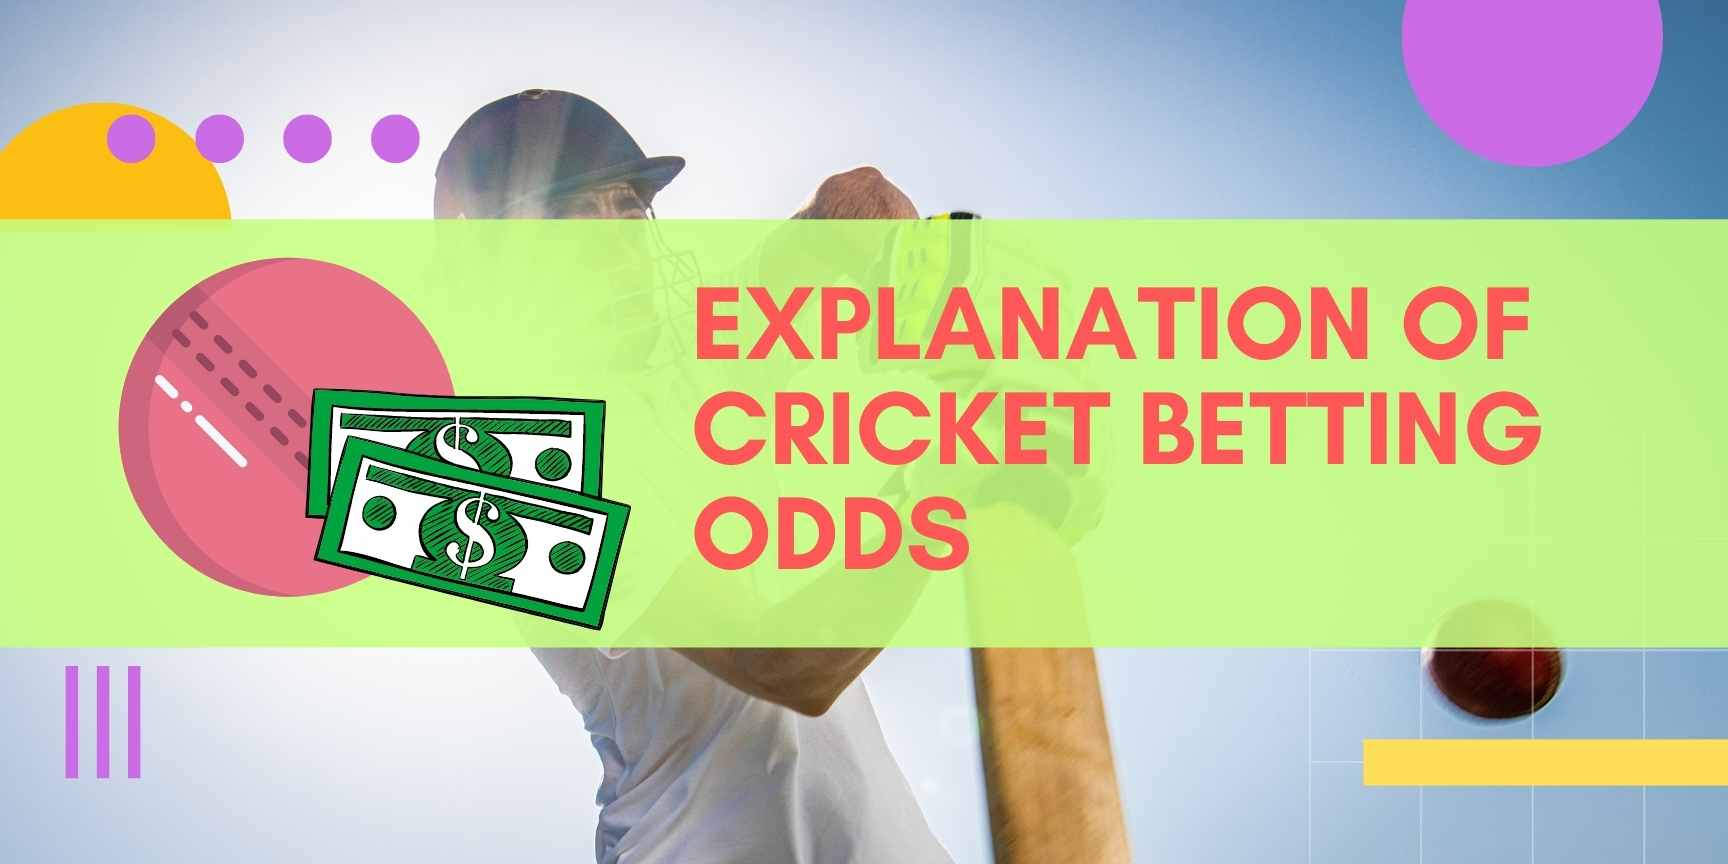 Explanation of cricket betting odds